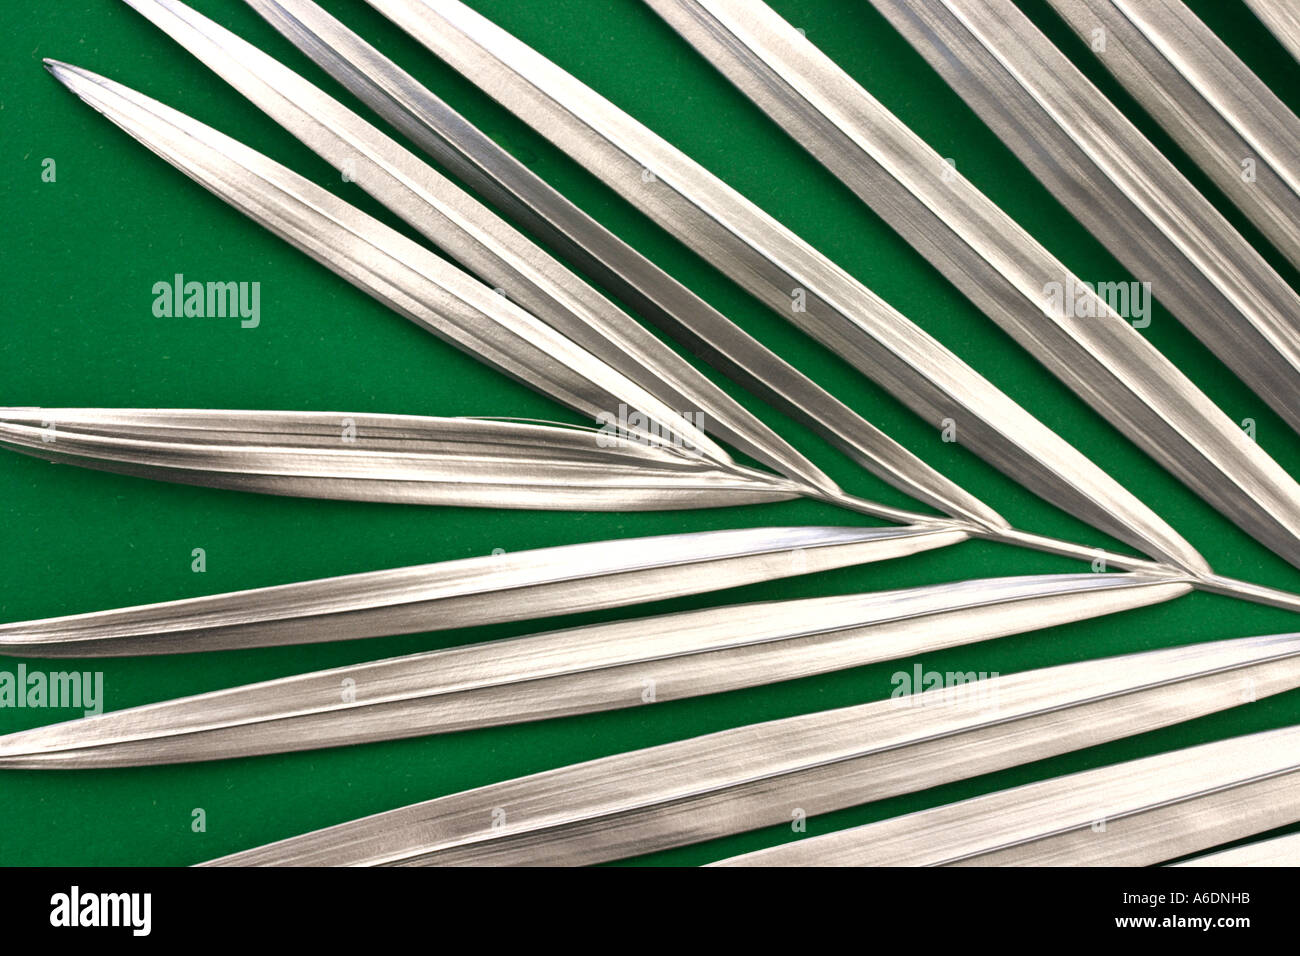 SILVER PALM FROND  GREEN BACKGROUND HORIZONTAL BAPDB5991 - Stock Image